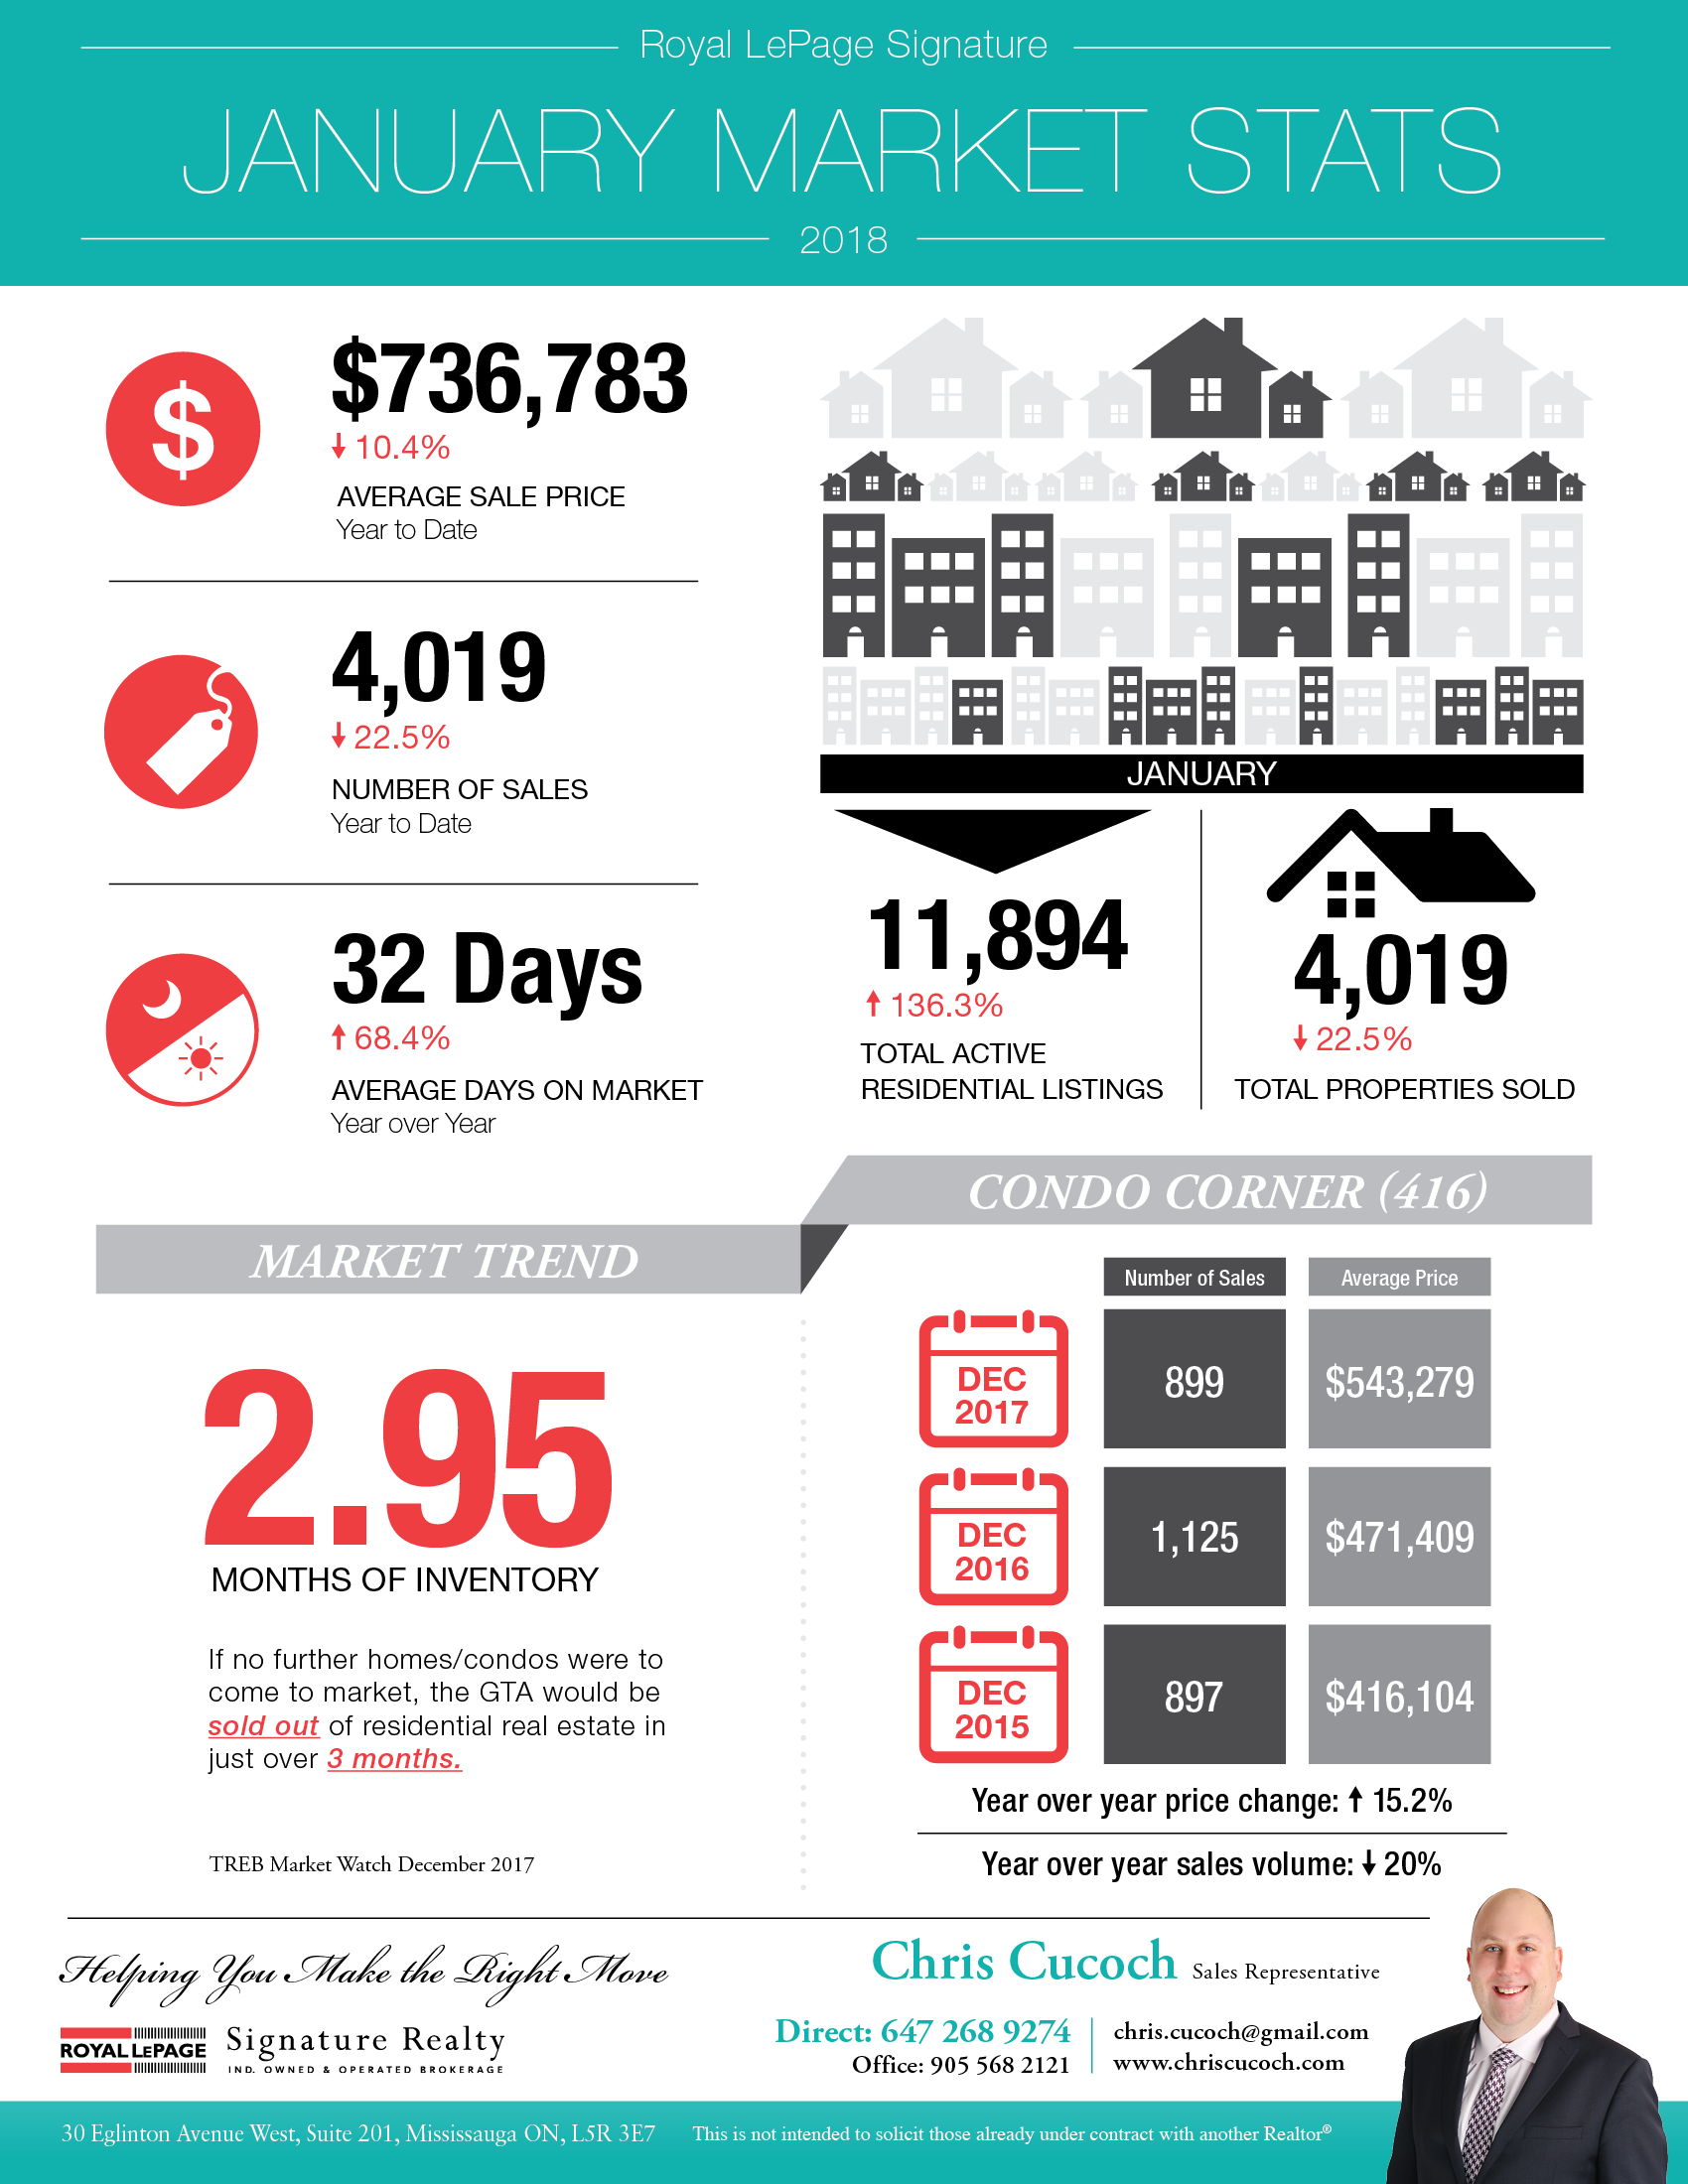 GTA Real Estate Market Statistics Infographic for January 2018